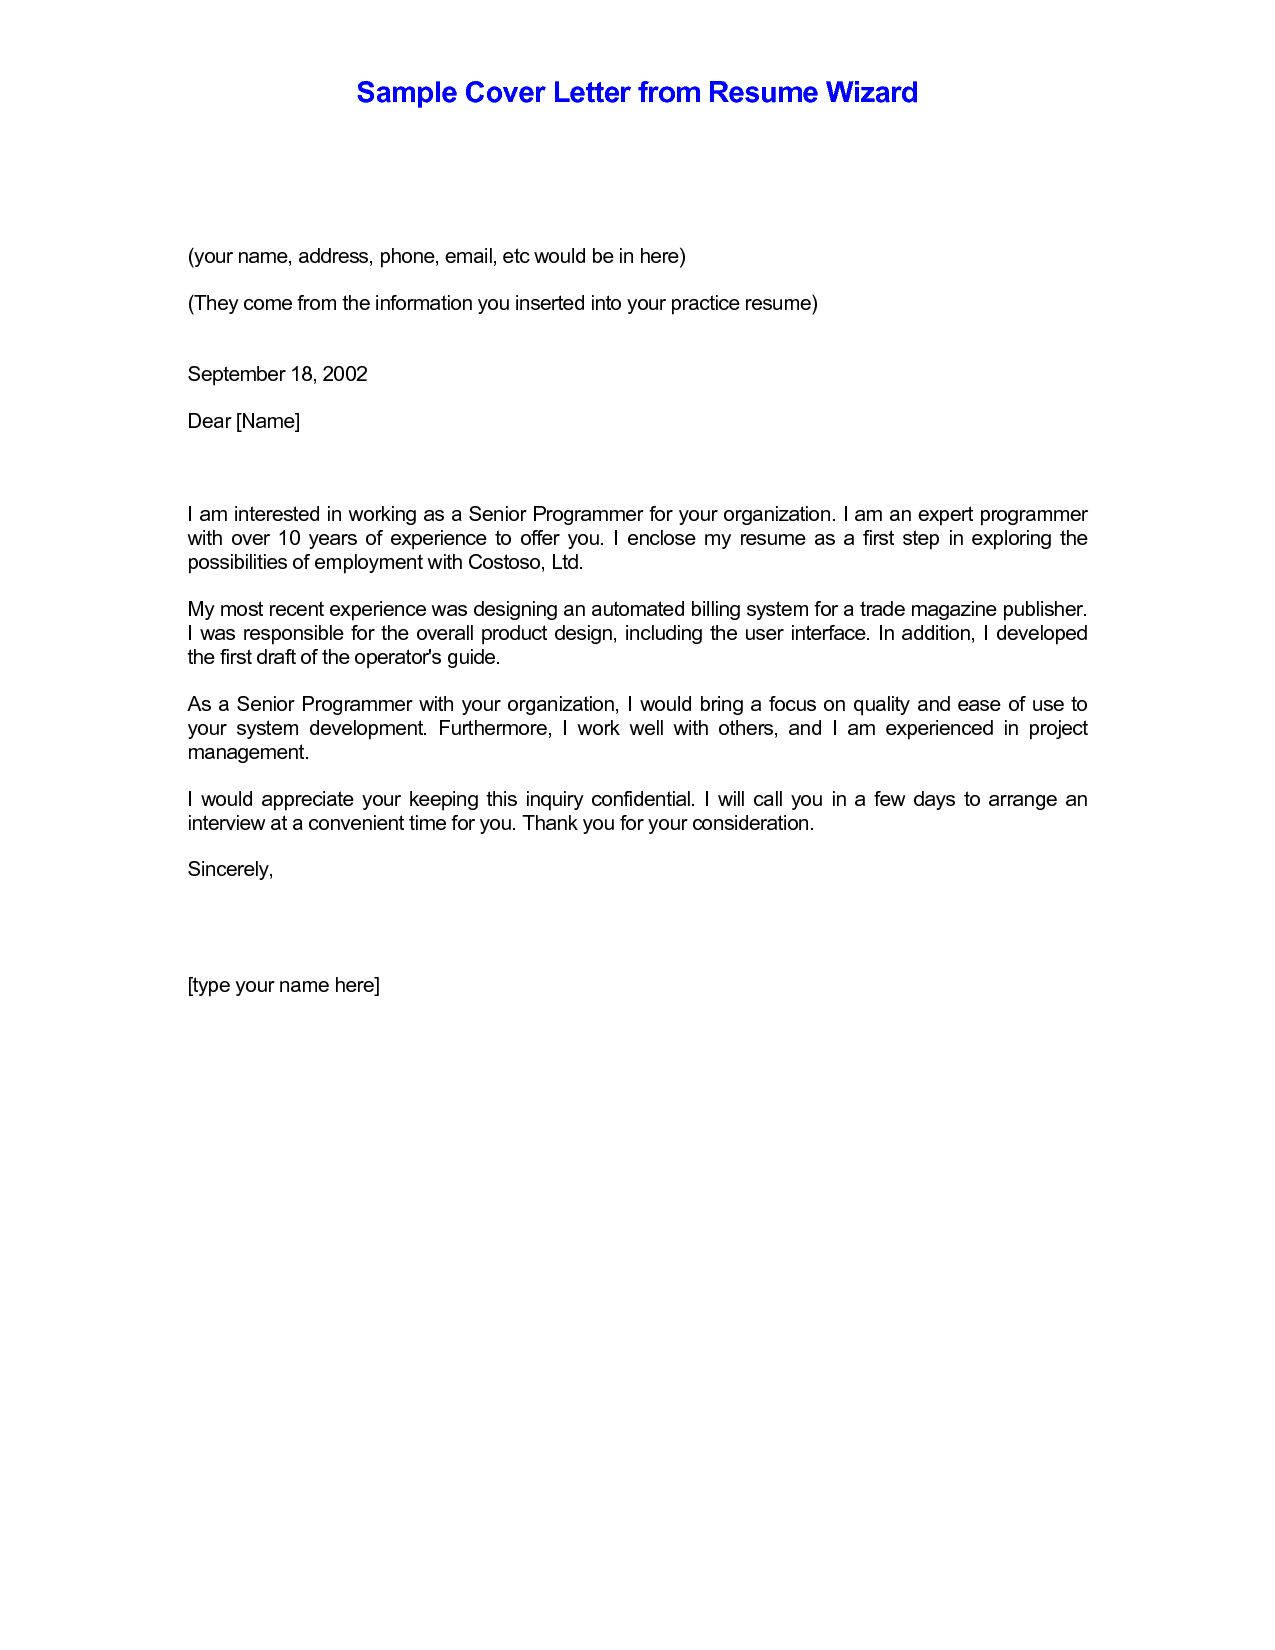 25 cover letter for employment cover letter for employment how make cover letter resume